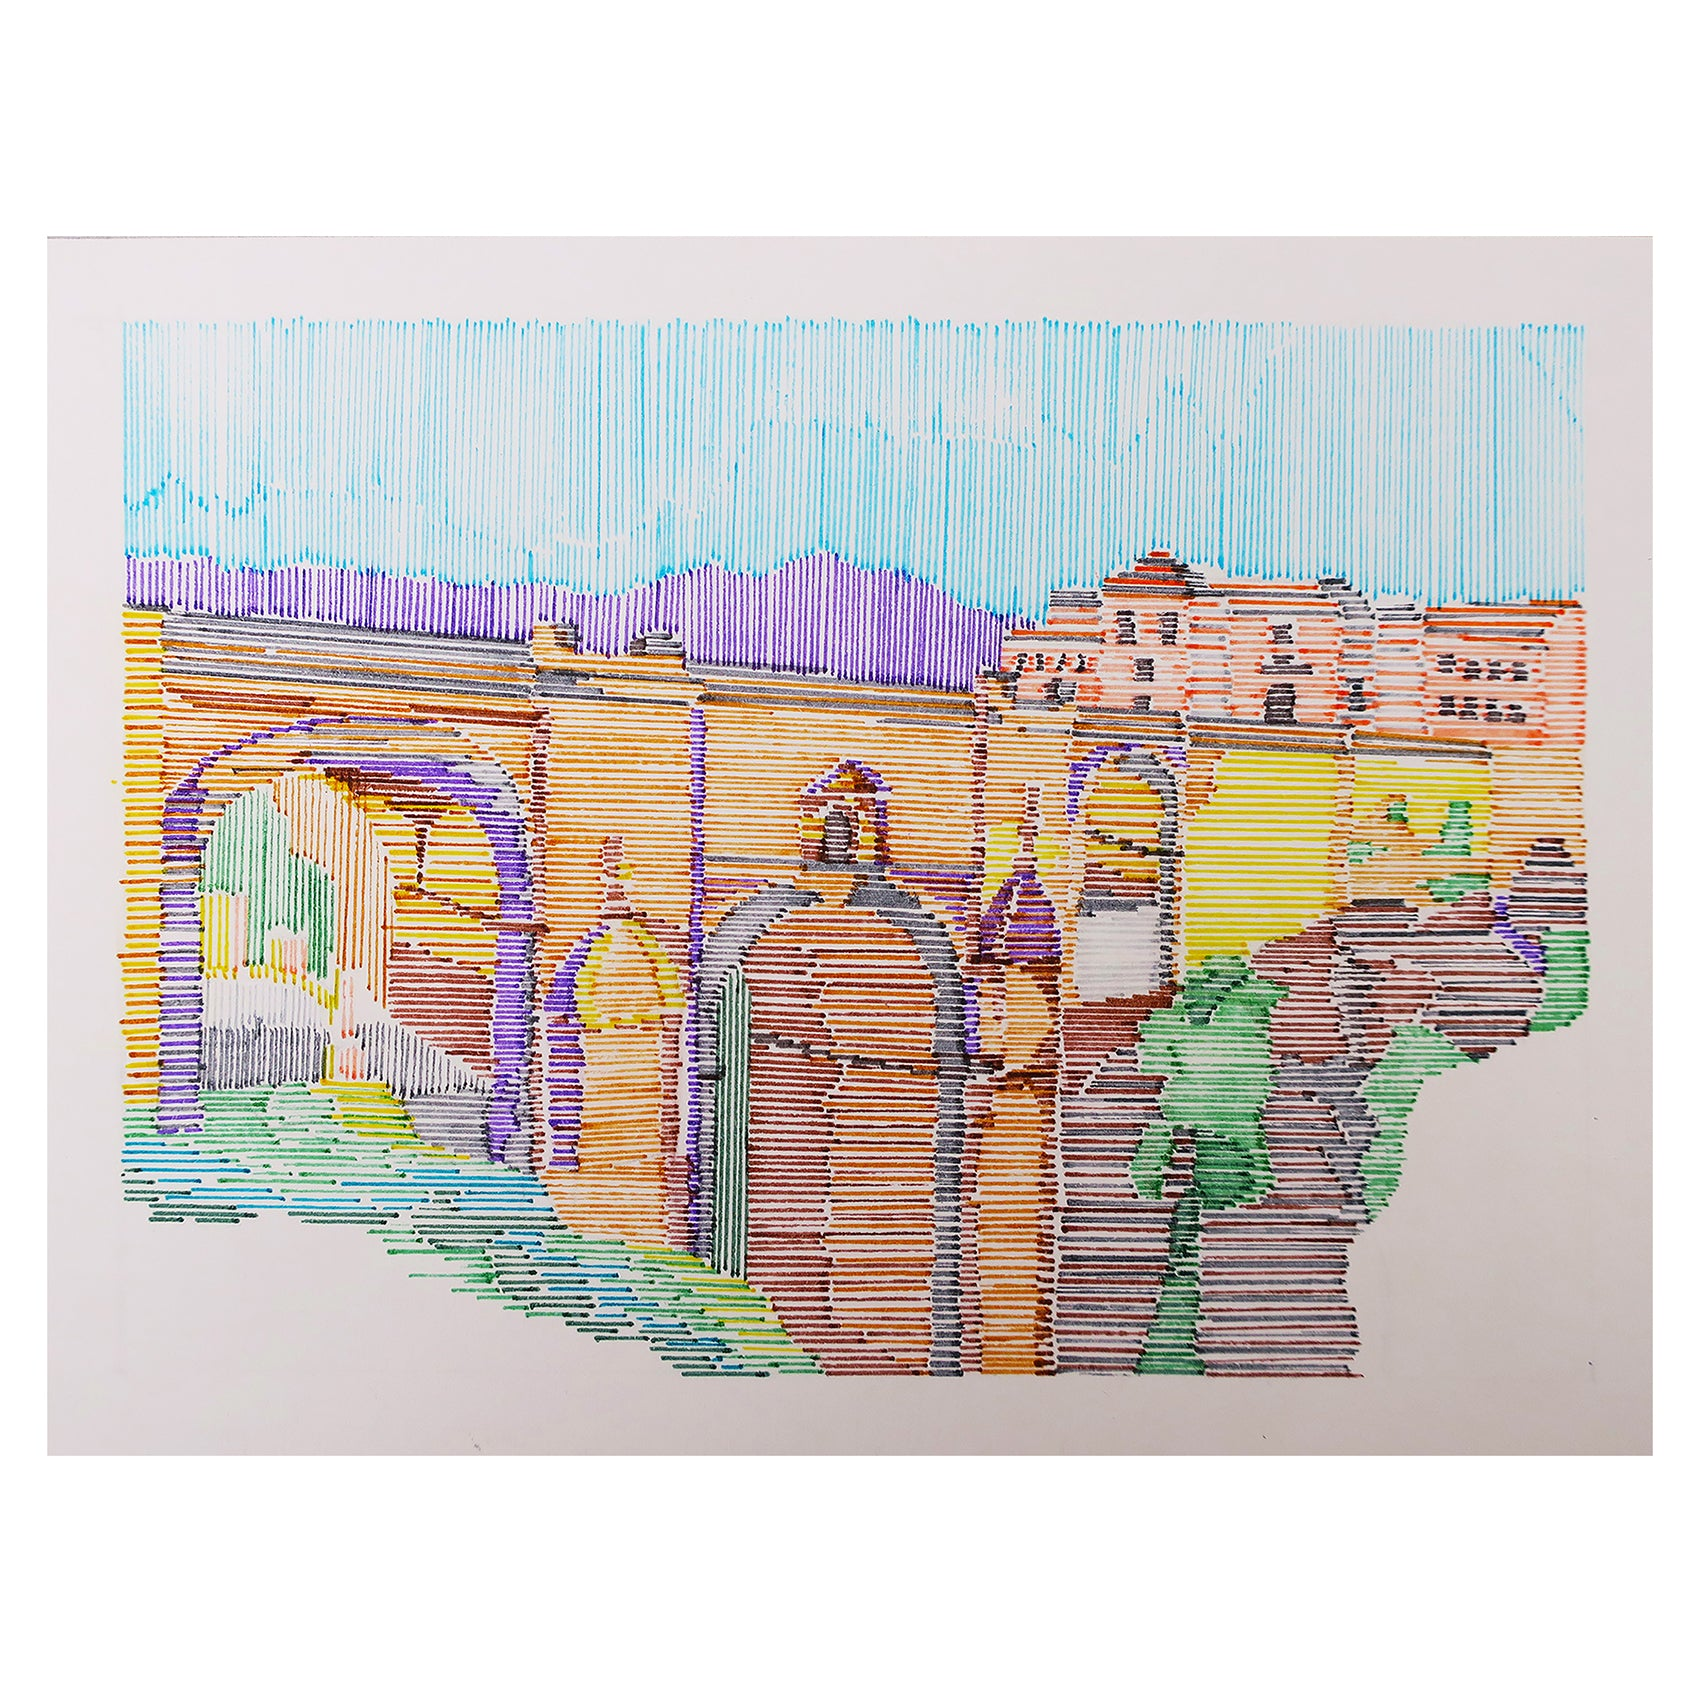 Ronda Puente Antiguo Illustration